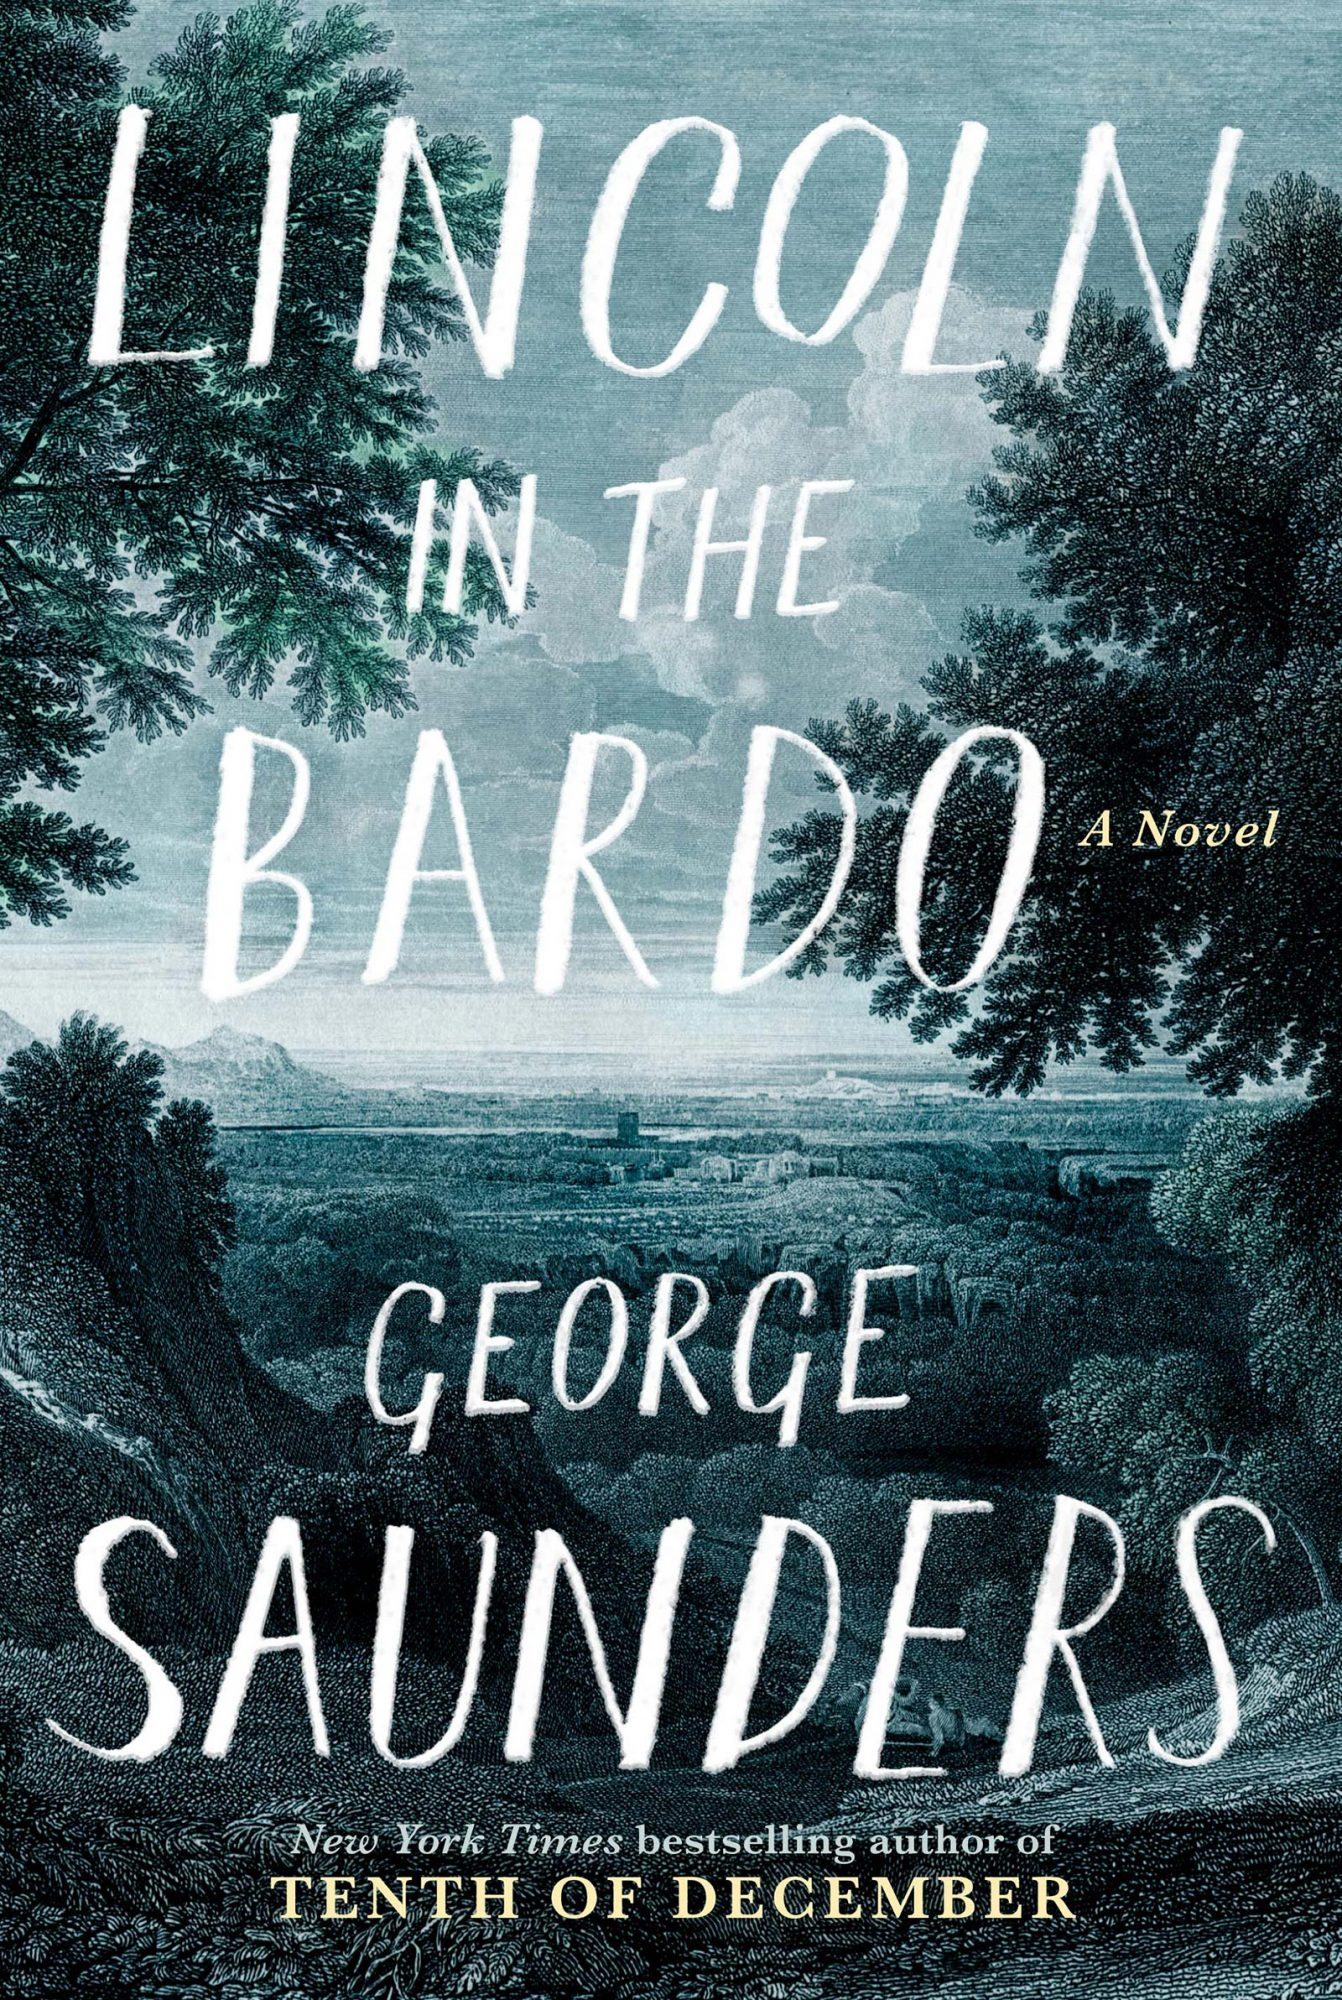 Lincoln in the Bardo: A Novel (2/14/17)